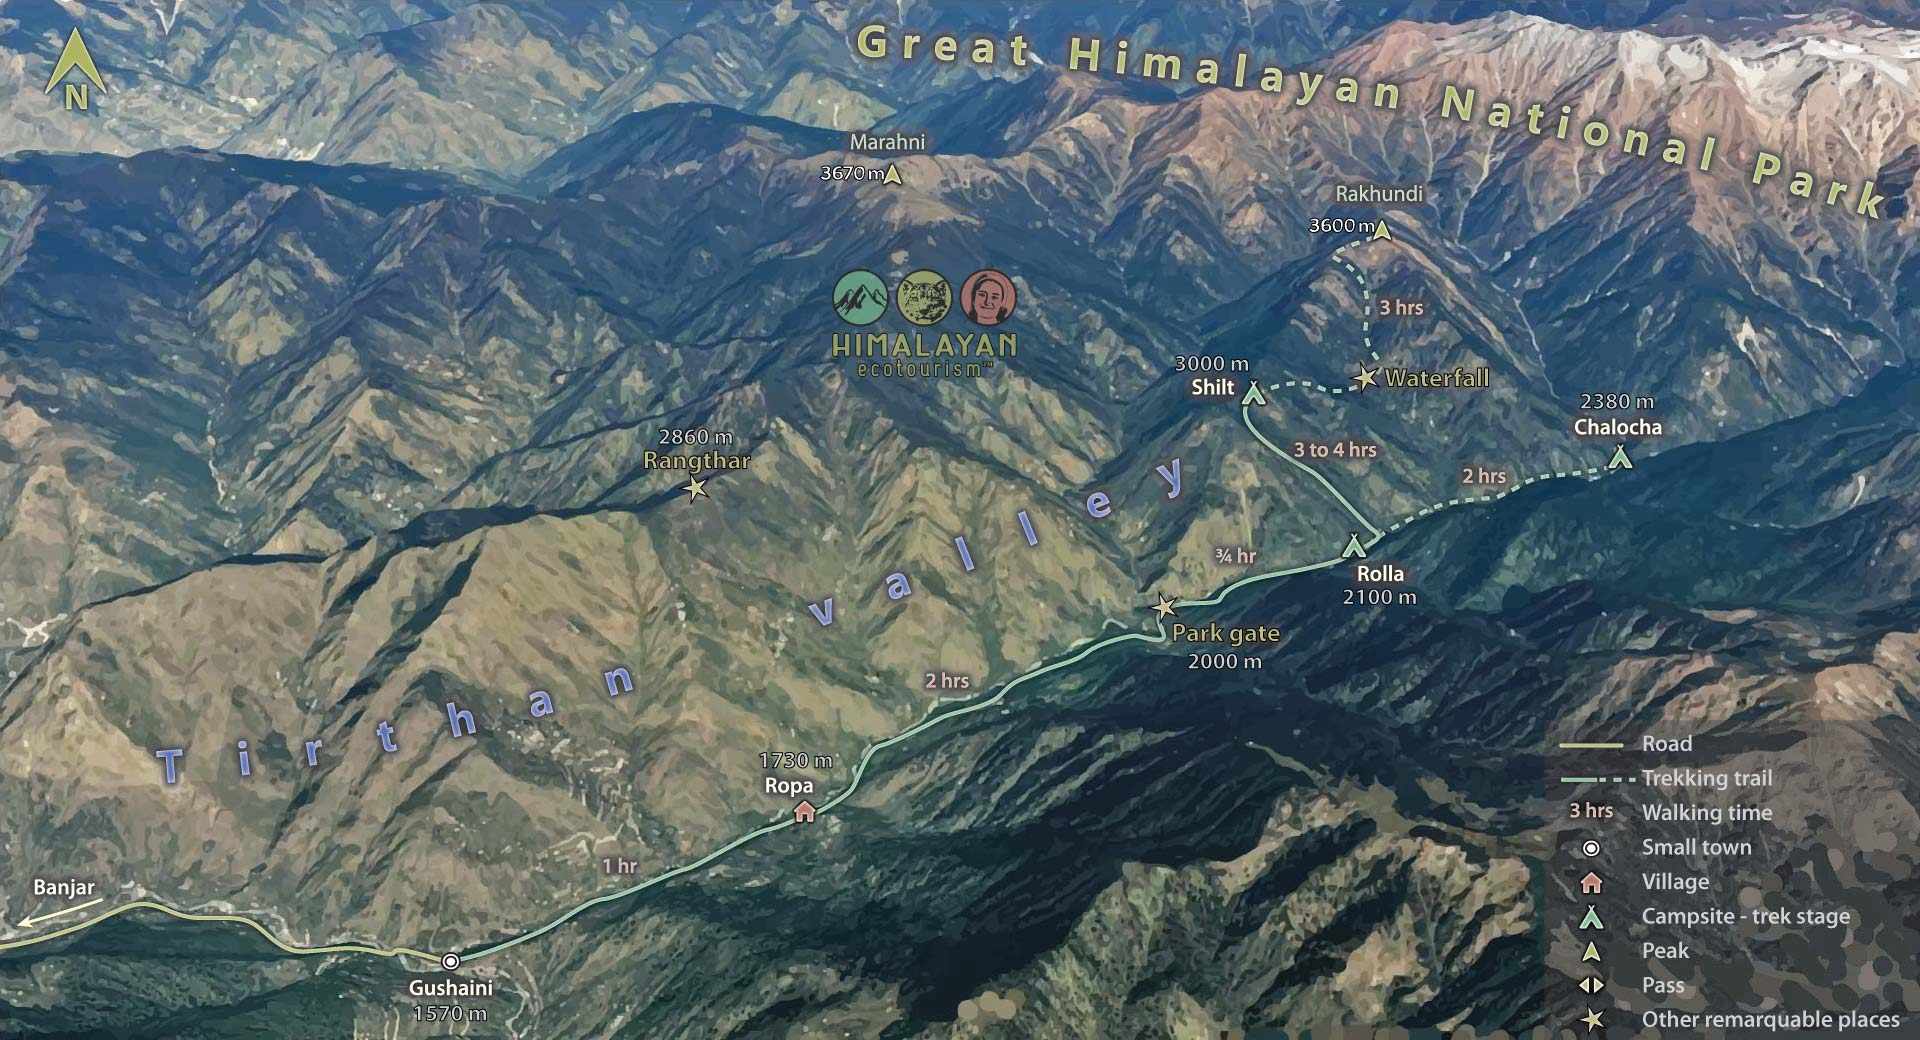 map of the Great Himalayan National Park GHNP